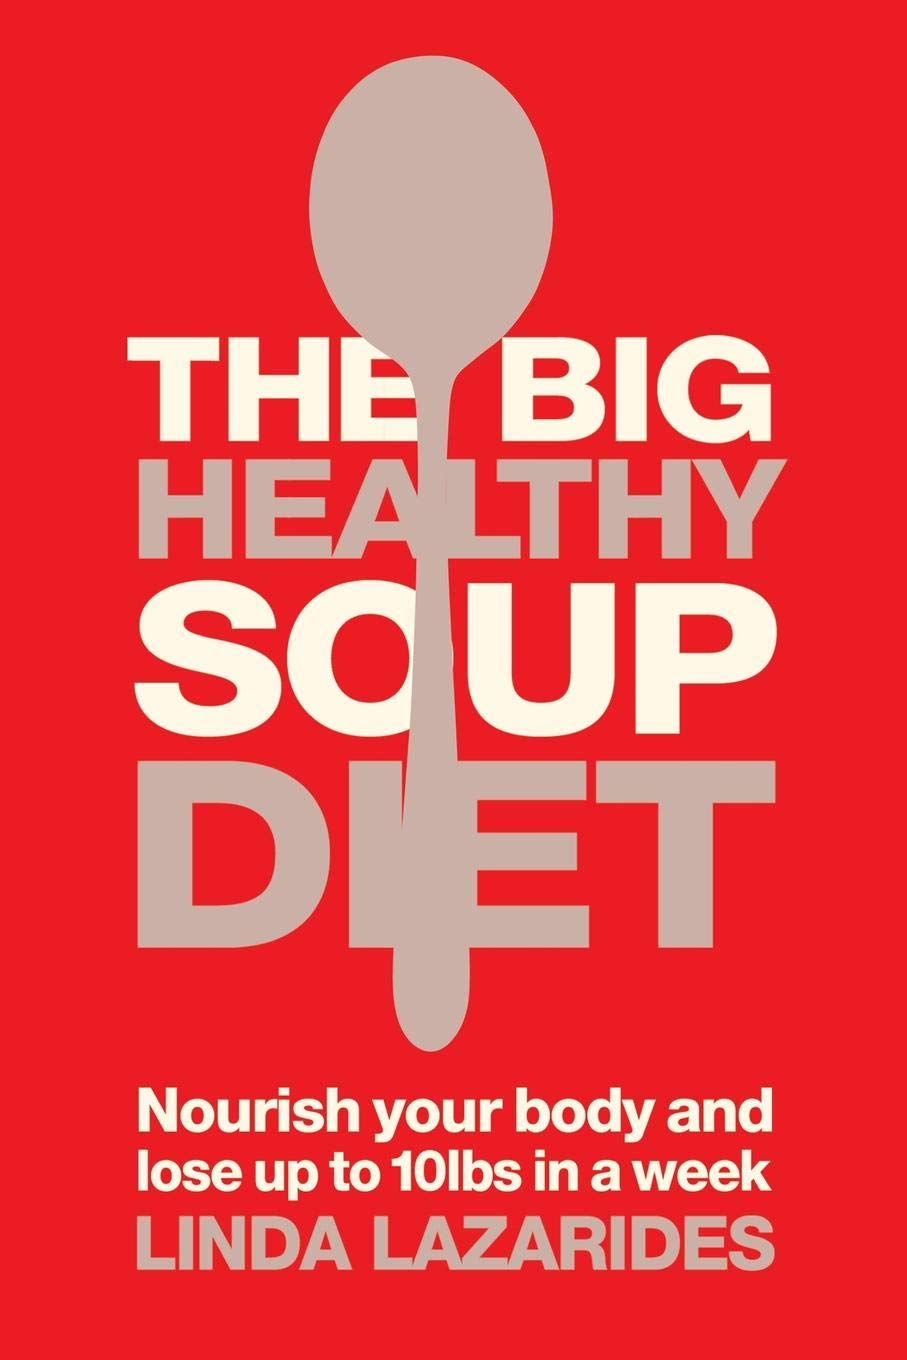 The Big Healthy Soup Diet: Nourish Your Body and Lose up to 10lbs in a Week